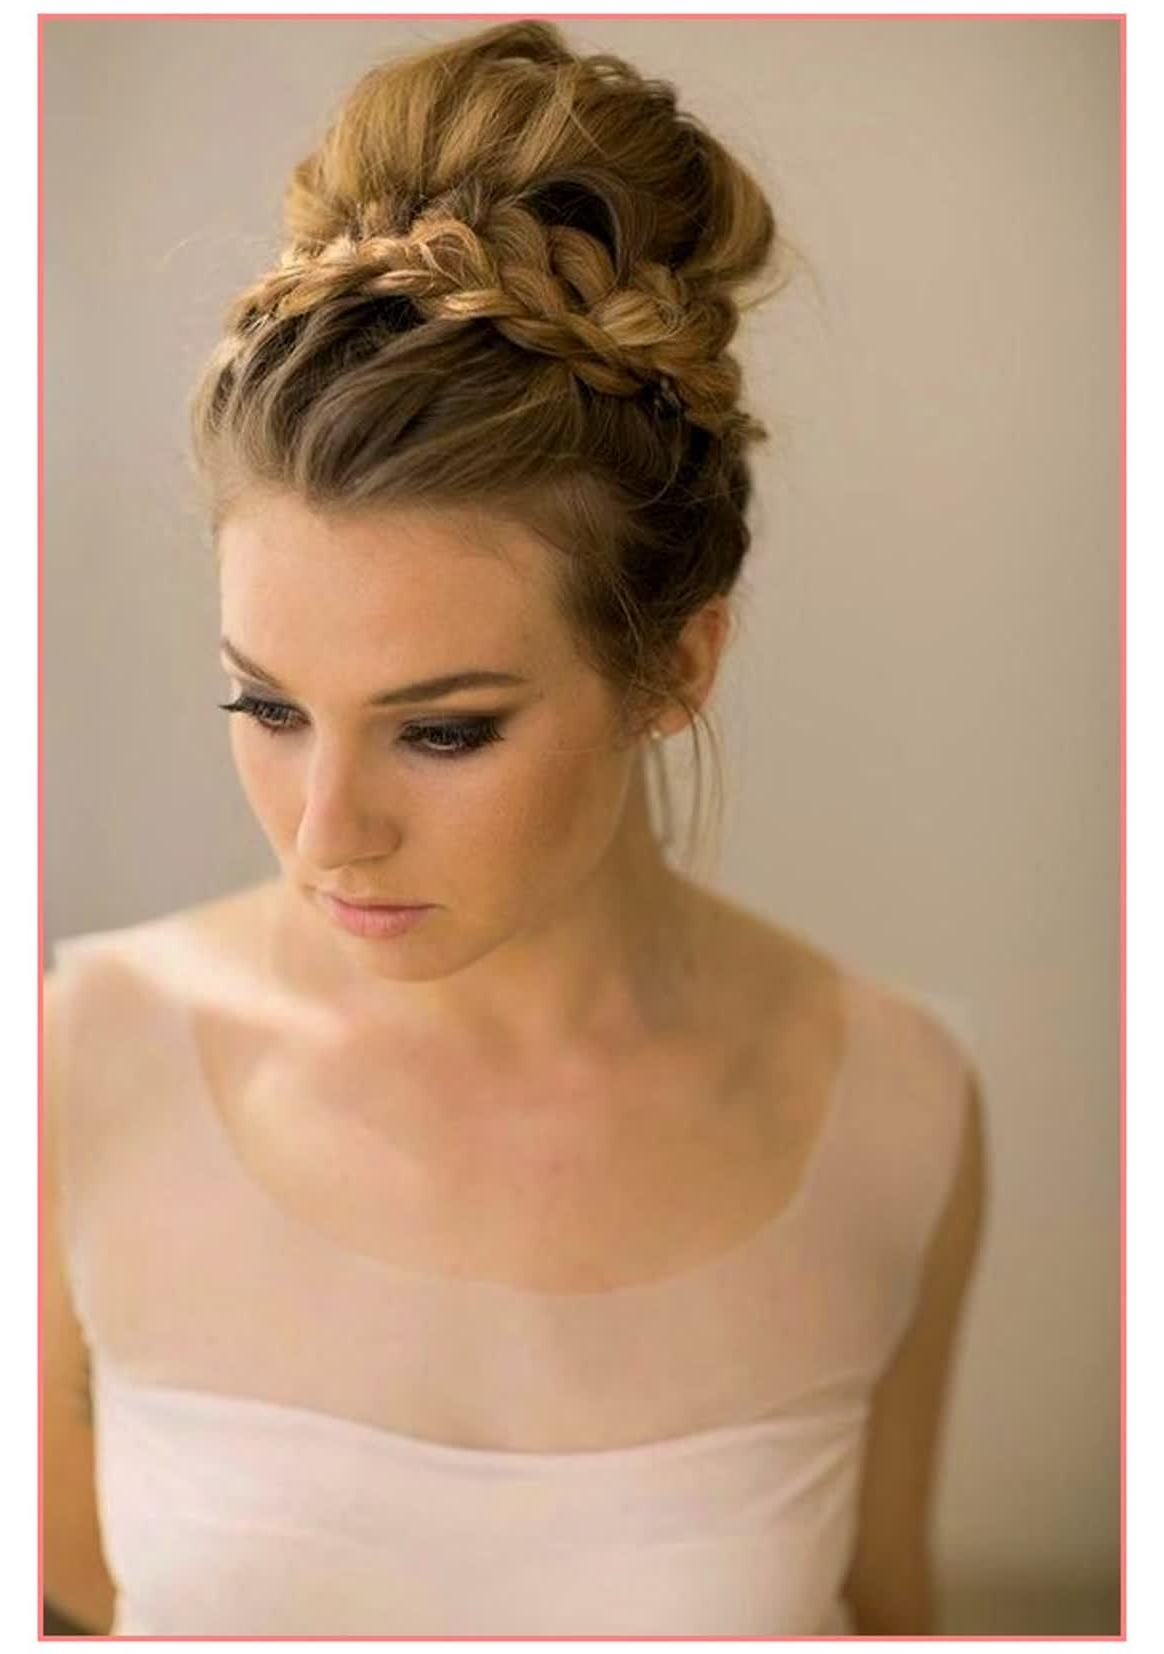 Most Up To Date Indian Wedding Hairstyles For Short Curly Hair Inside Indian Bridal Hairstyles For Short Curly Hair – The Newest Hairstyles (View 10 of 15)